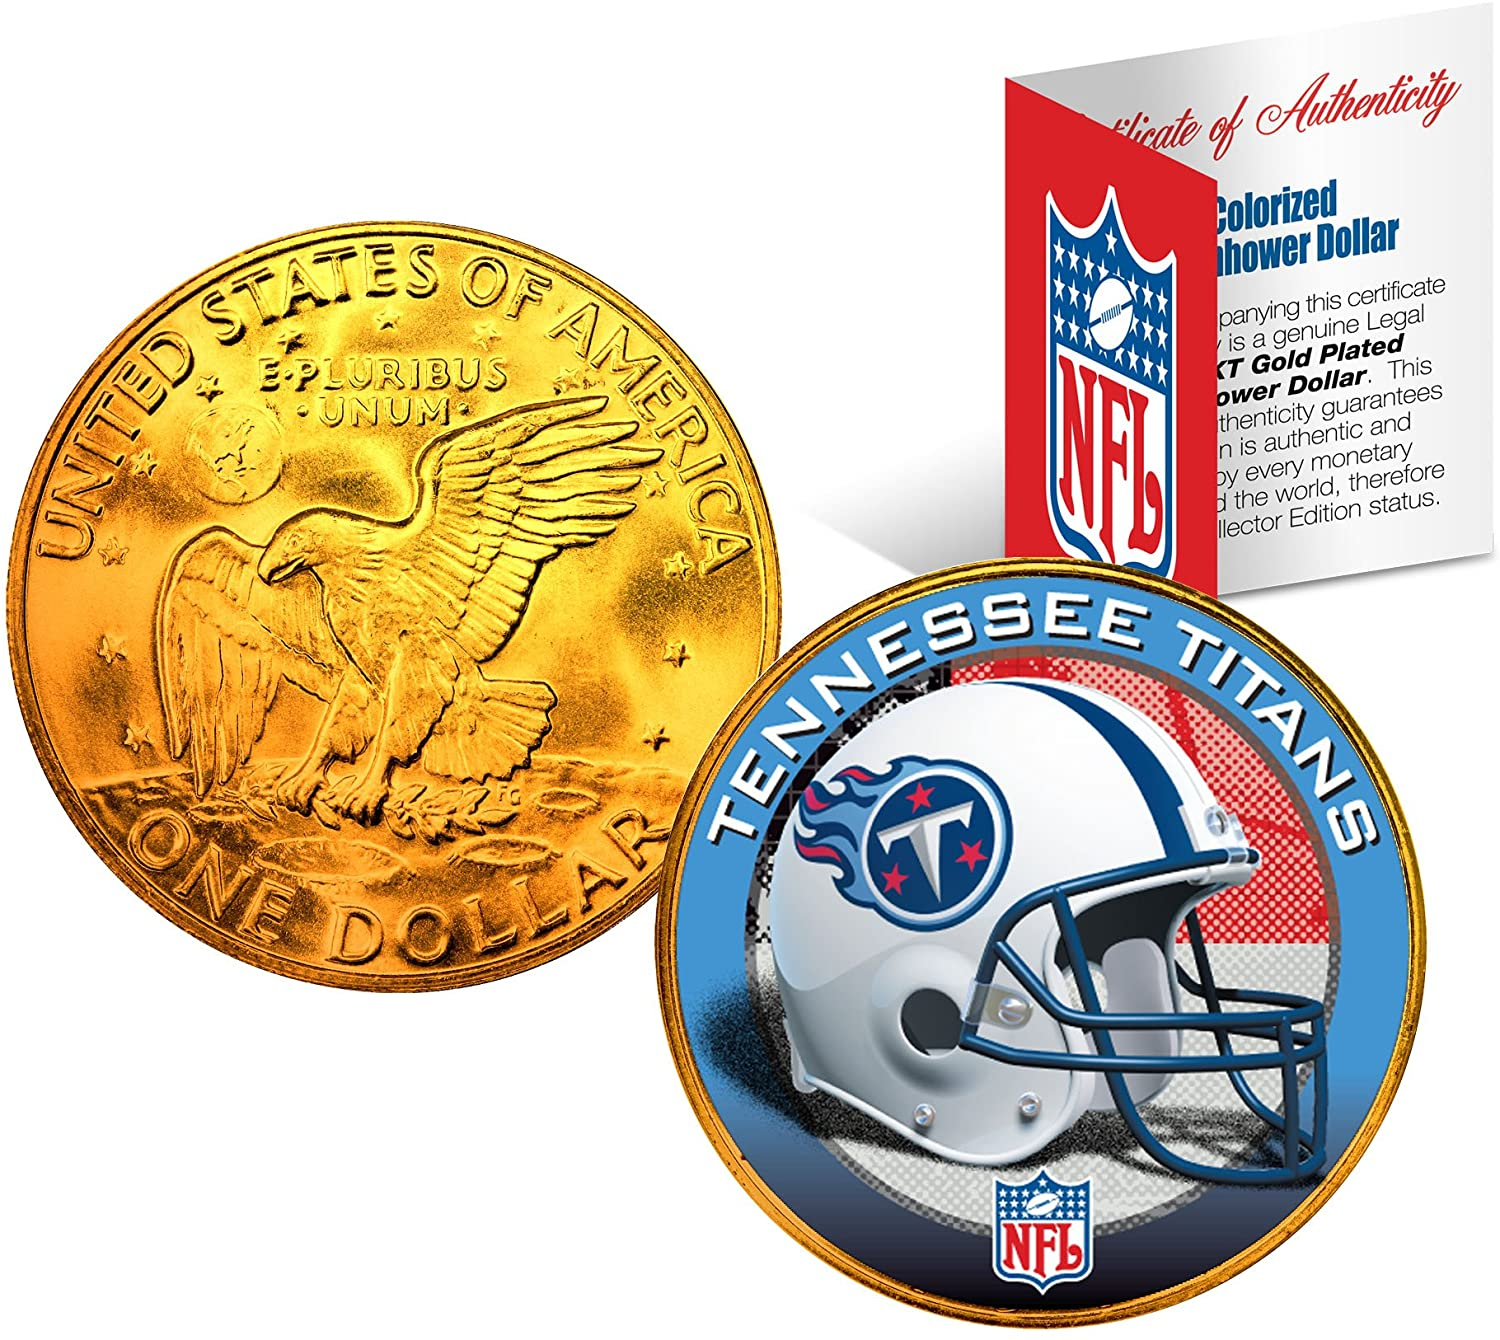 TENNESSEE TITANS NFL 24K Gold Plated IKE Dollar US Coin OFFICIALLY LICENSED with NFL Certificate